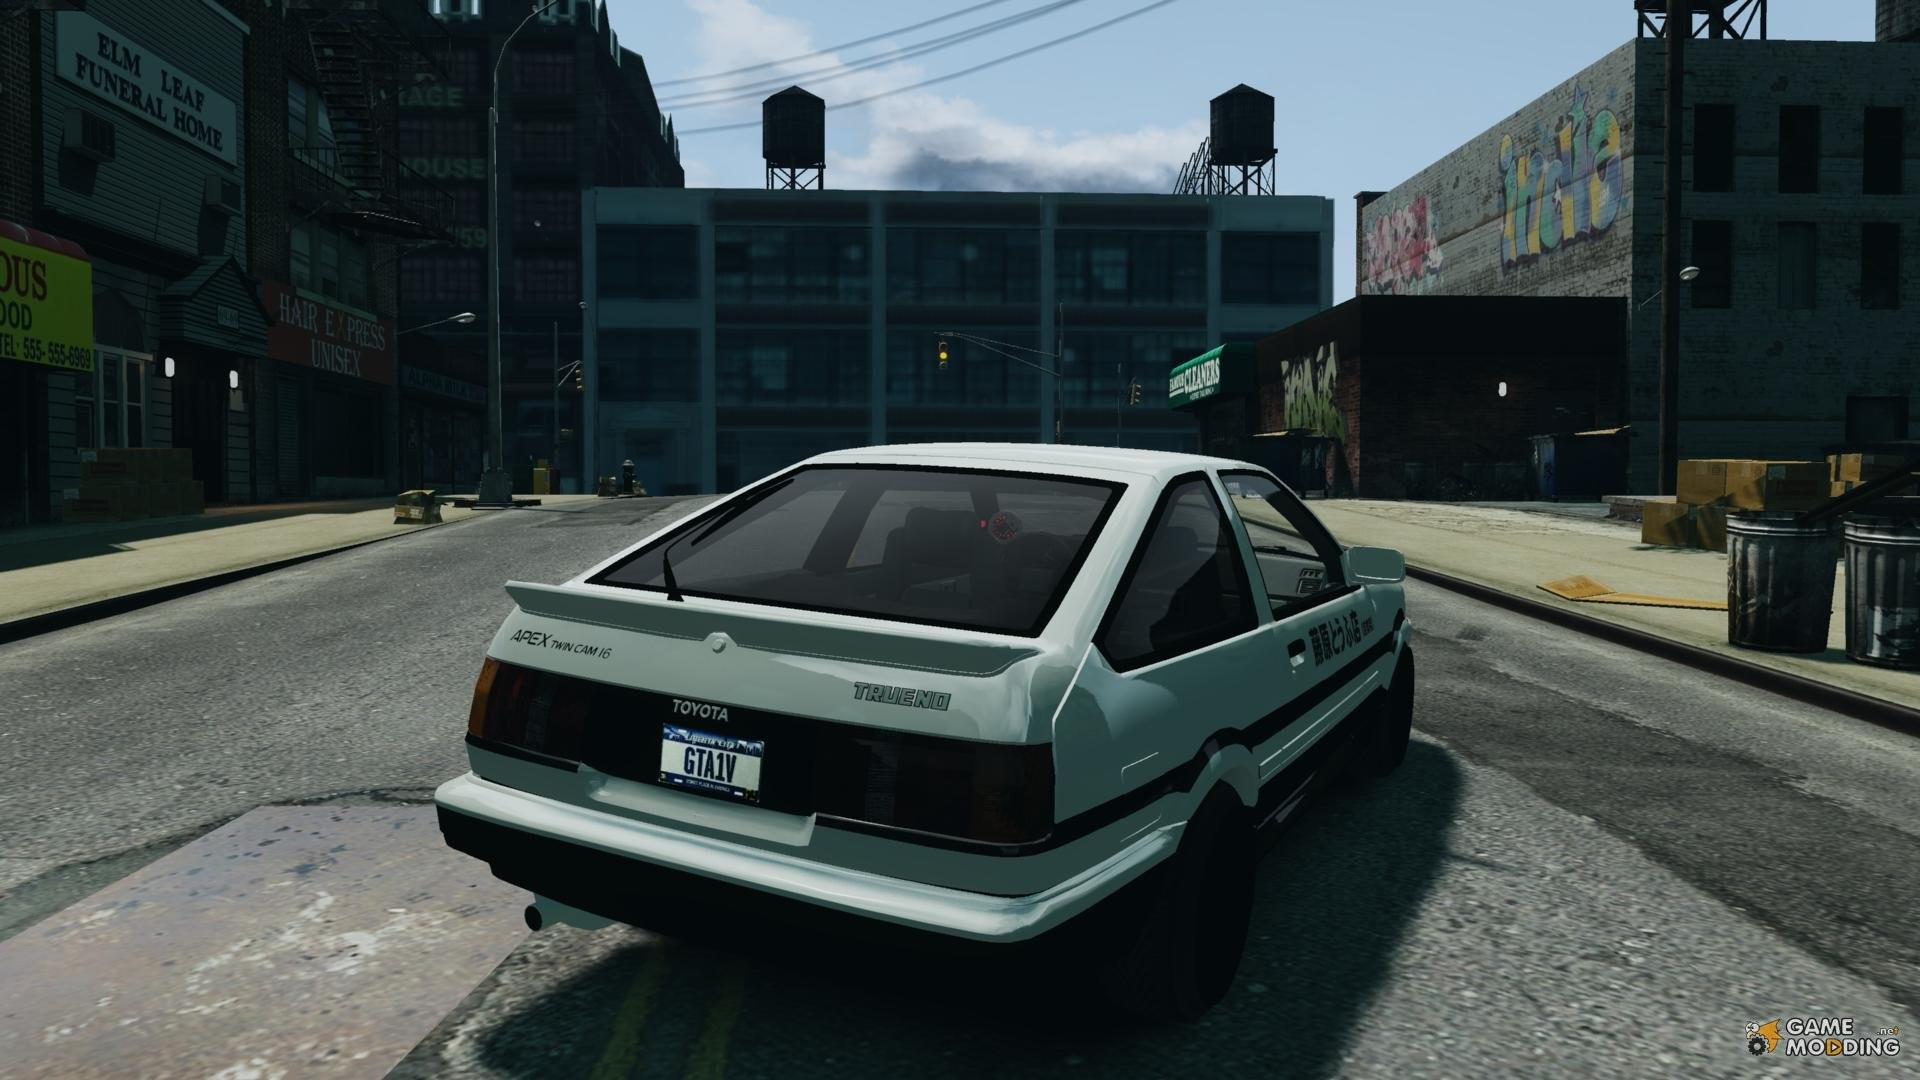 Toyota ae86 wallpapers 68 images - Initial d wallpaper 1920x1080 ...